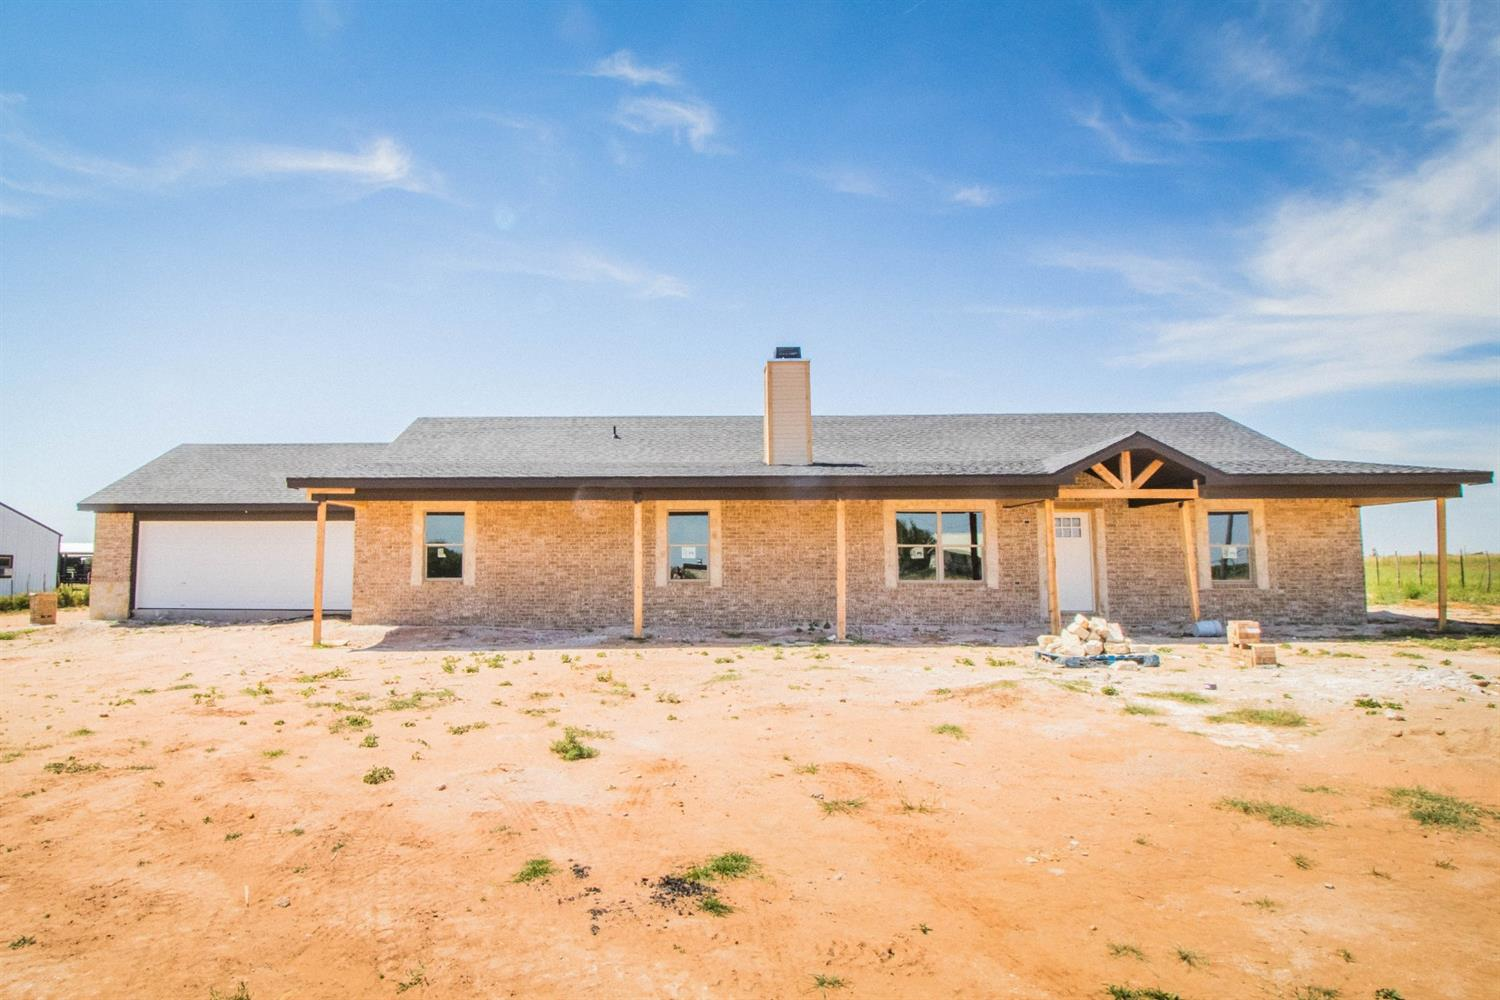 This gorgeous new construction home located in the desirable Shallowater ISD on 1 acre has it all! The open concept living room and kitchen are complete with a bricked fireplace and vaulted ceilings. Escape to the isolated master that features a large wrap around closet, oversized walk in shower ,and double vanities. The large laundry room includes extra storage space and room for a fridge. Relax and enjoy the wide open spaces on the oversized covered back patio. Estimated completion 9/1.